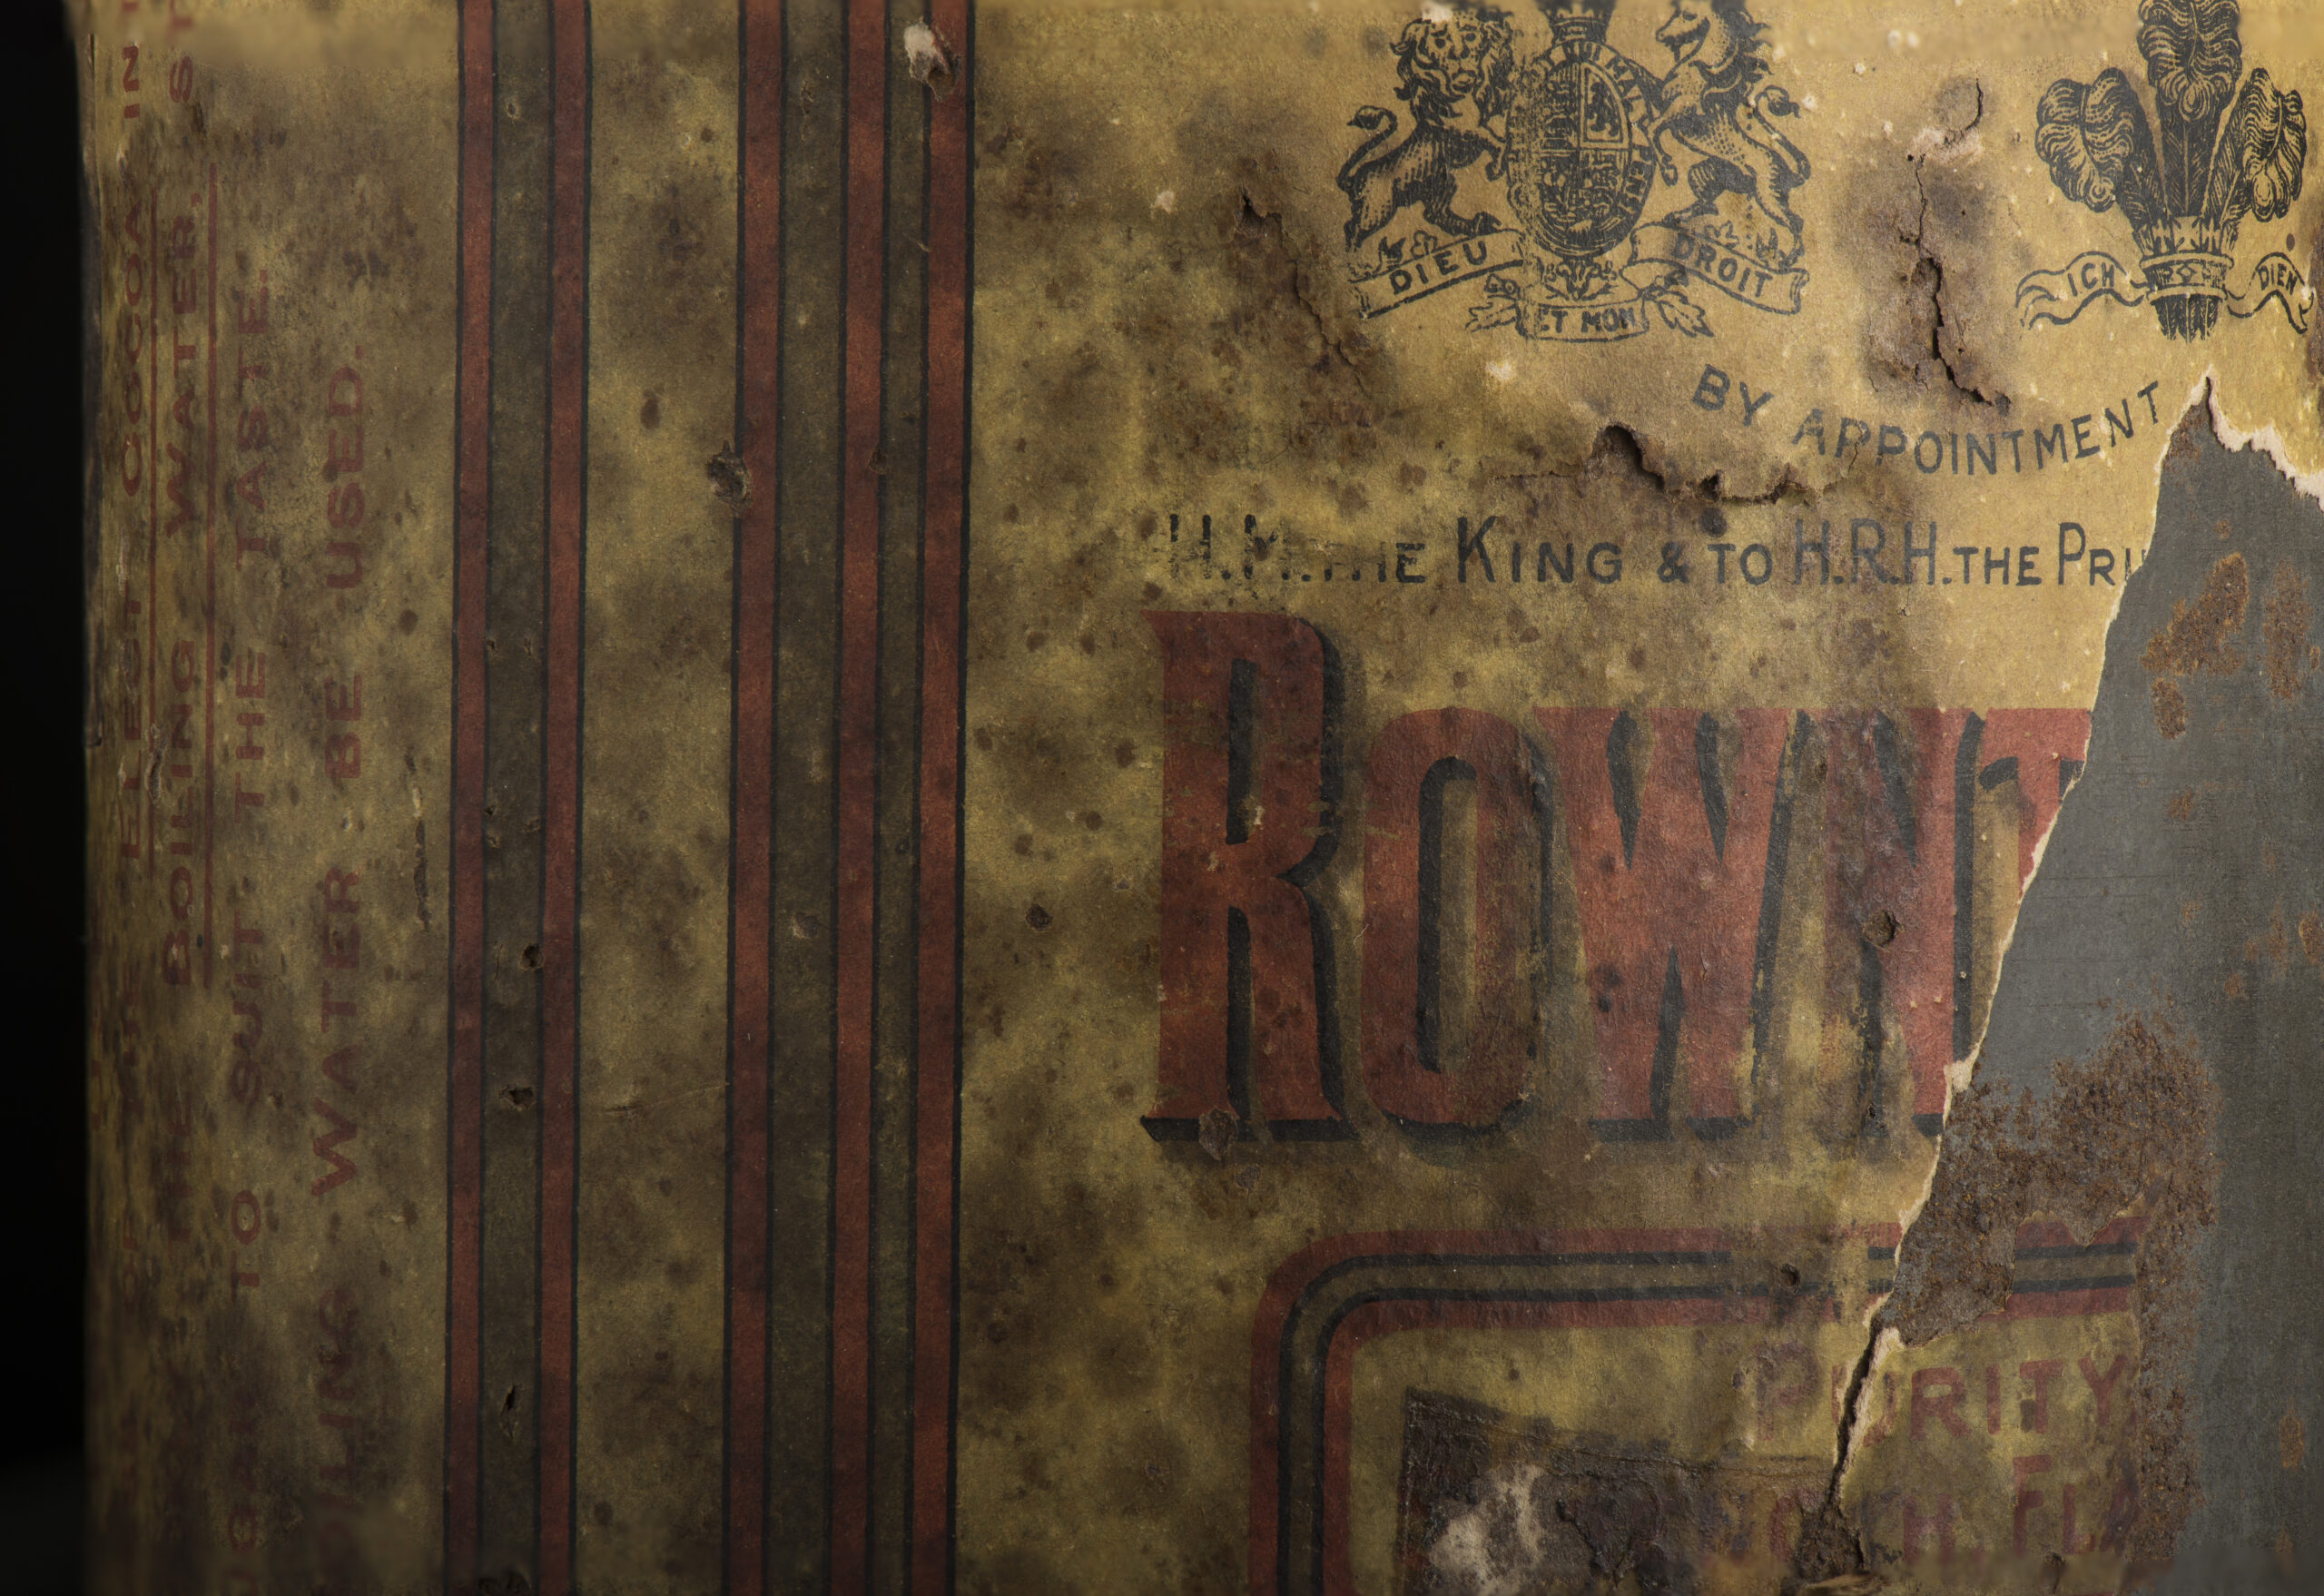 Close up of Rowntree logo on Shackleton's Cocoa Tin.